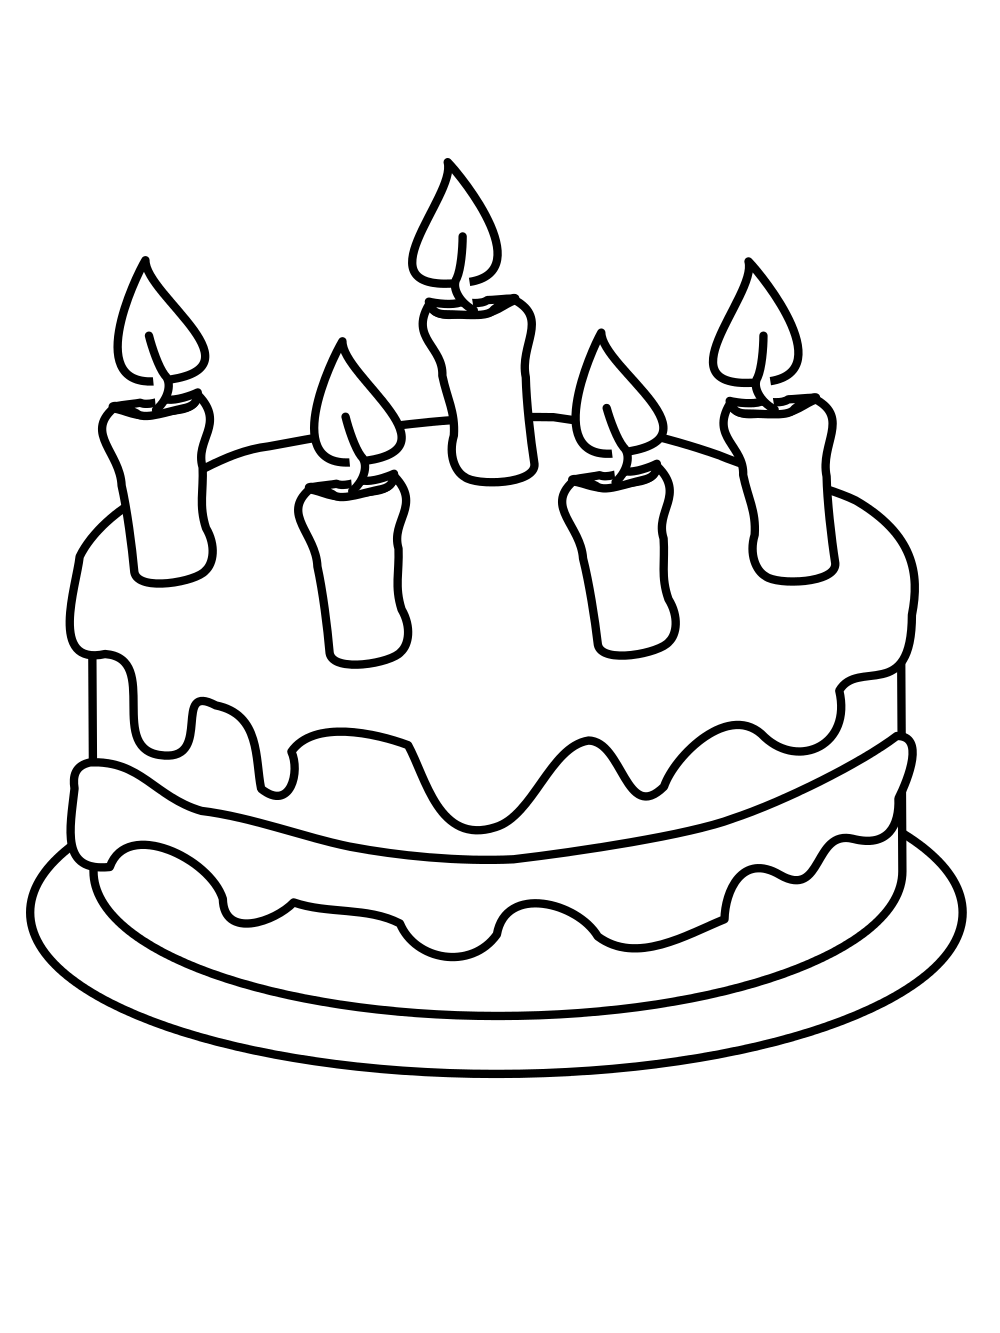 how to draw a birthday cake cake drawing at getdrawings free download draw to how birthday a cake